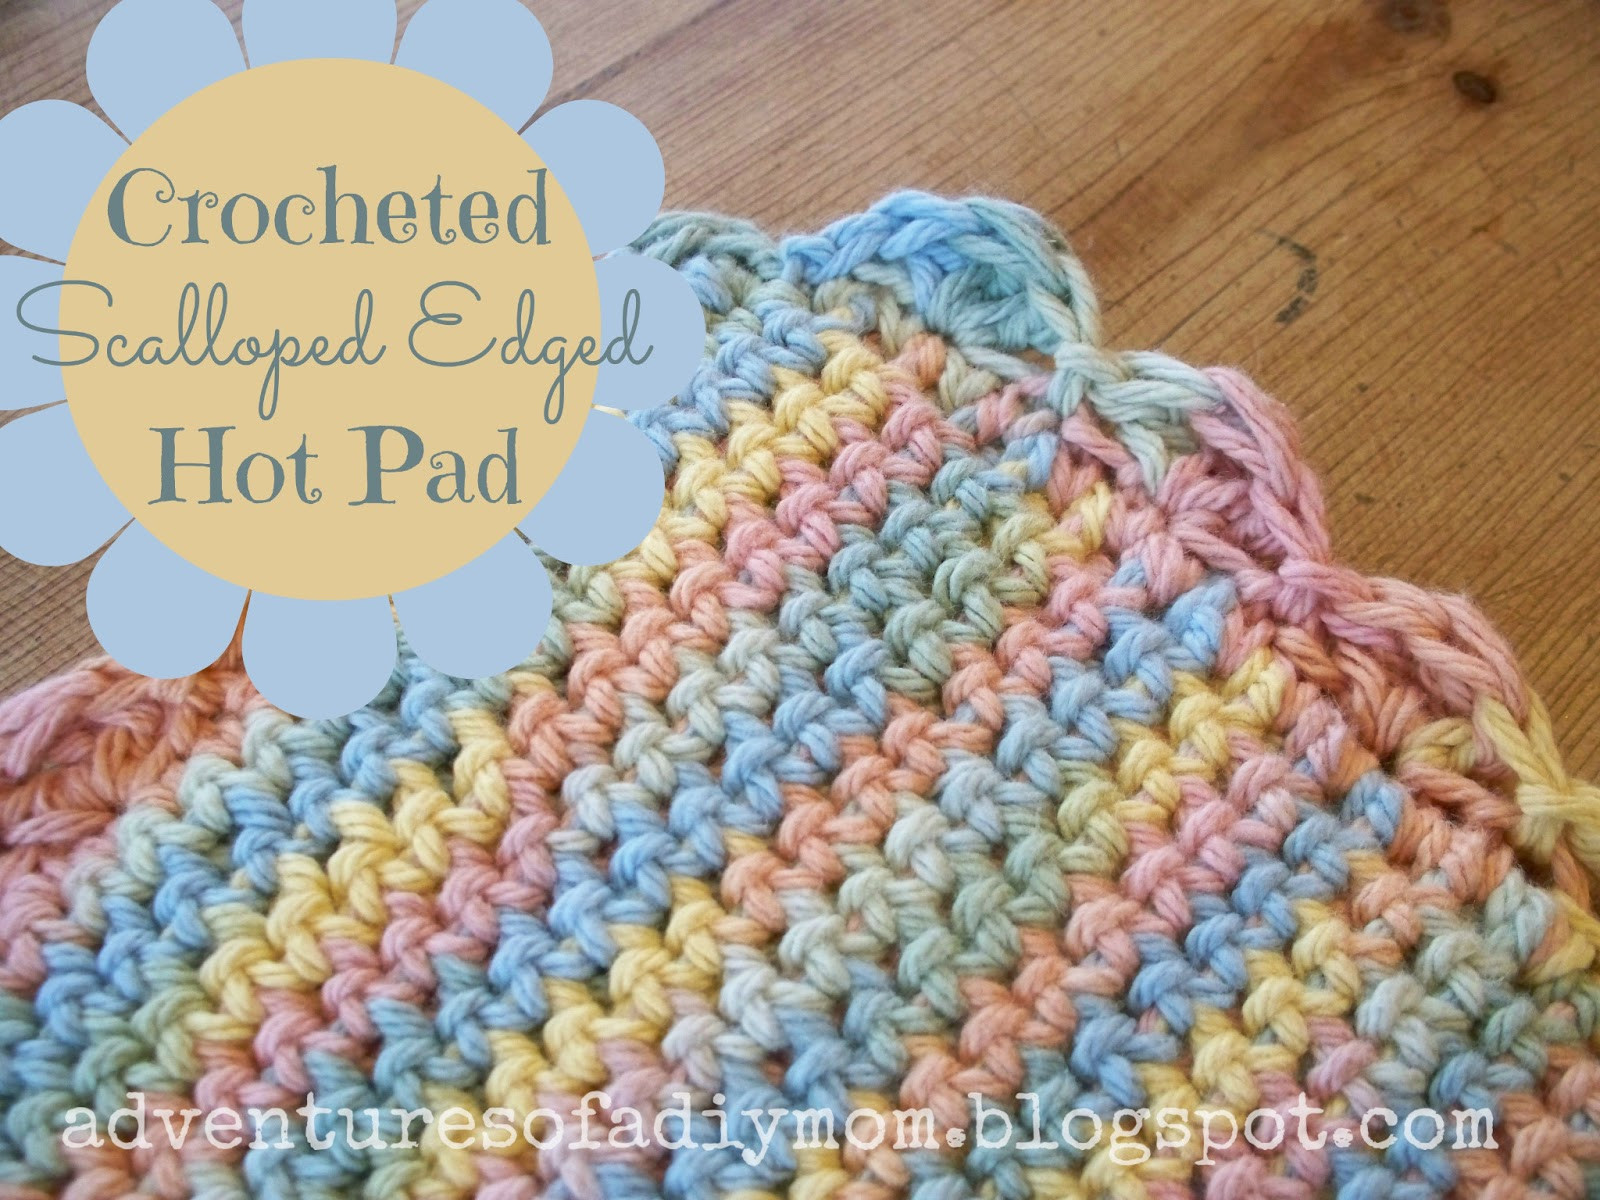 New Crocheted Scalloped Edged Hot Pad Adventures Of A Diy Mom Crochet Hot Pad Pattern Of Awesome 35 Pictures Crochet Hot Pad Pattern